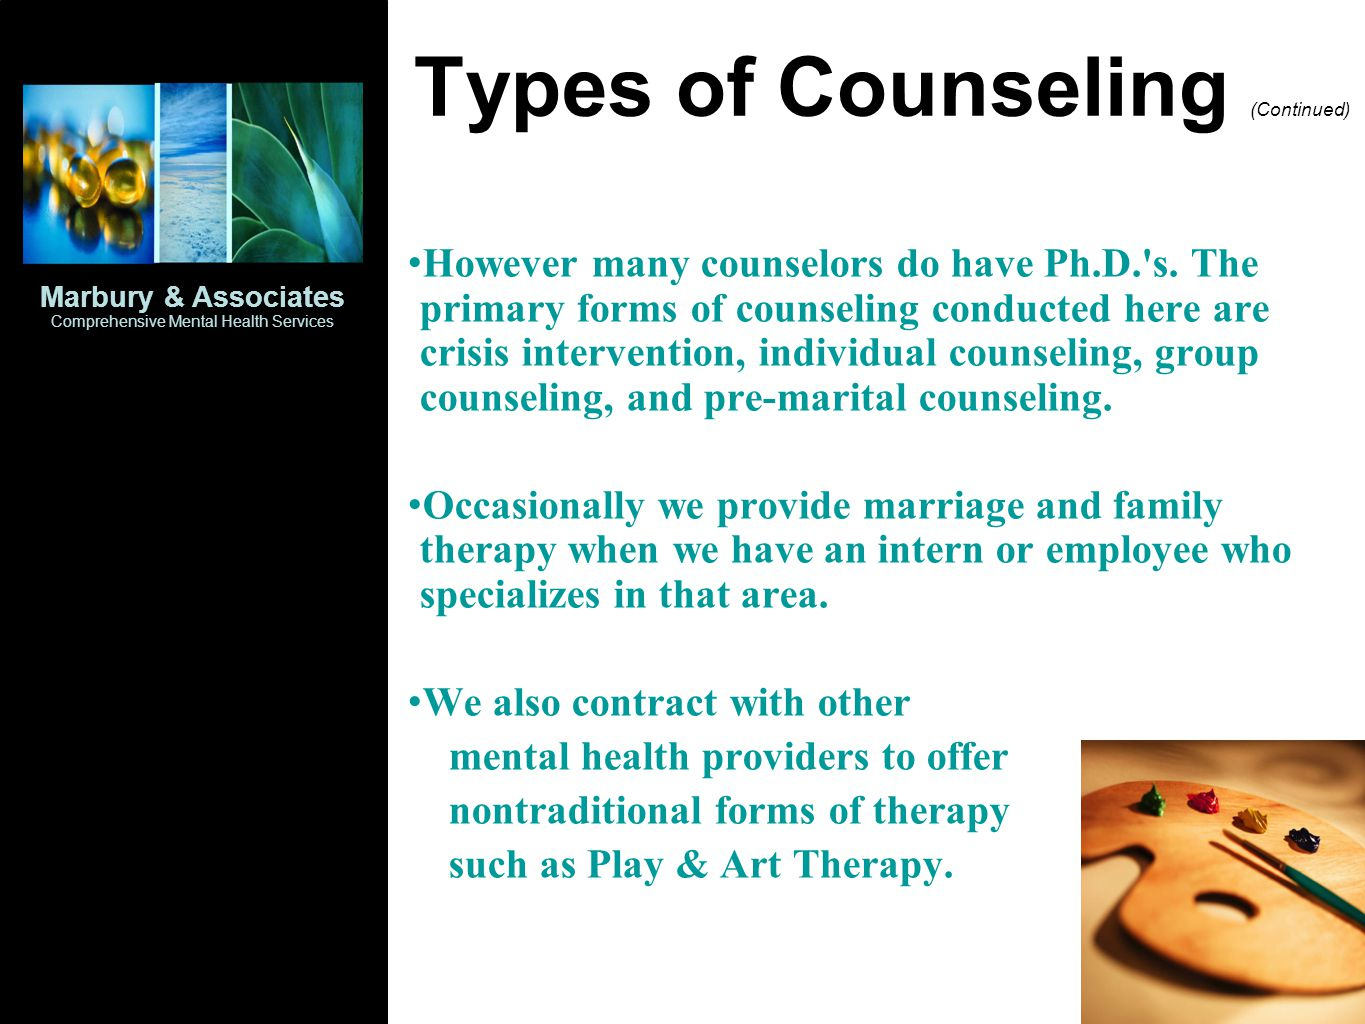 Types of Counseling (Continued)